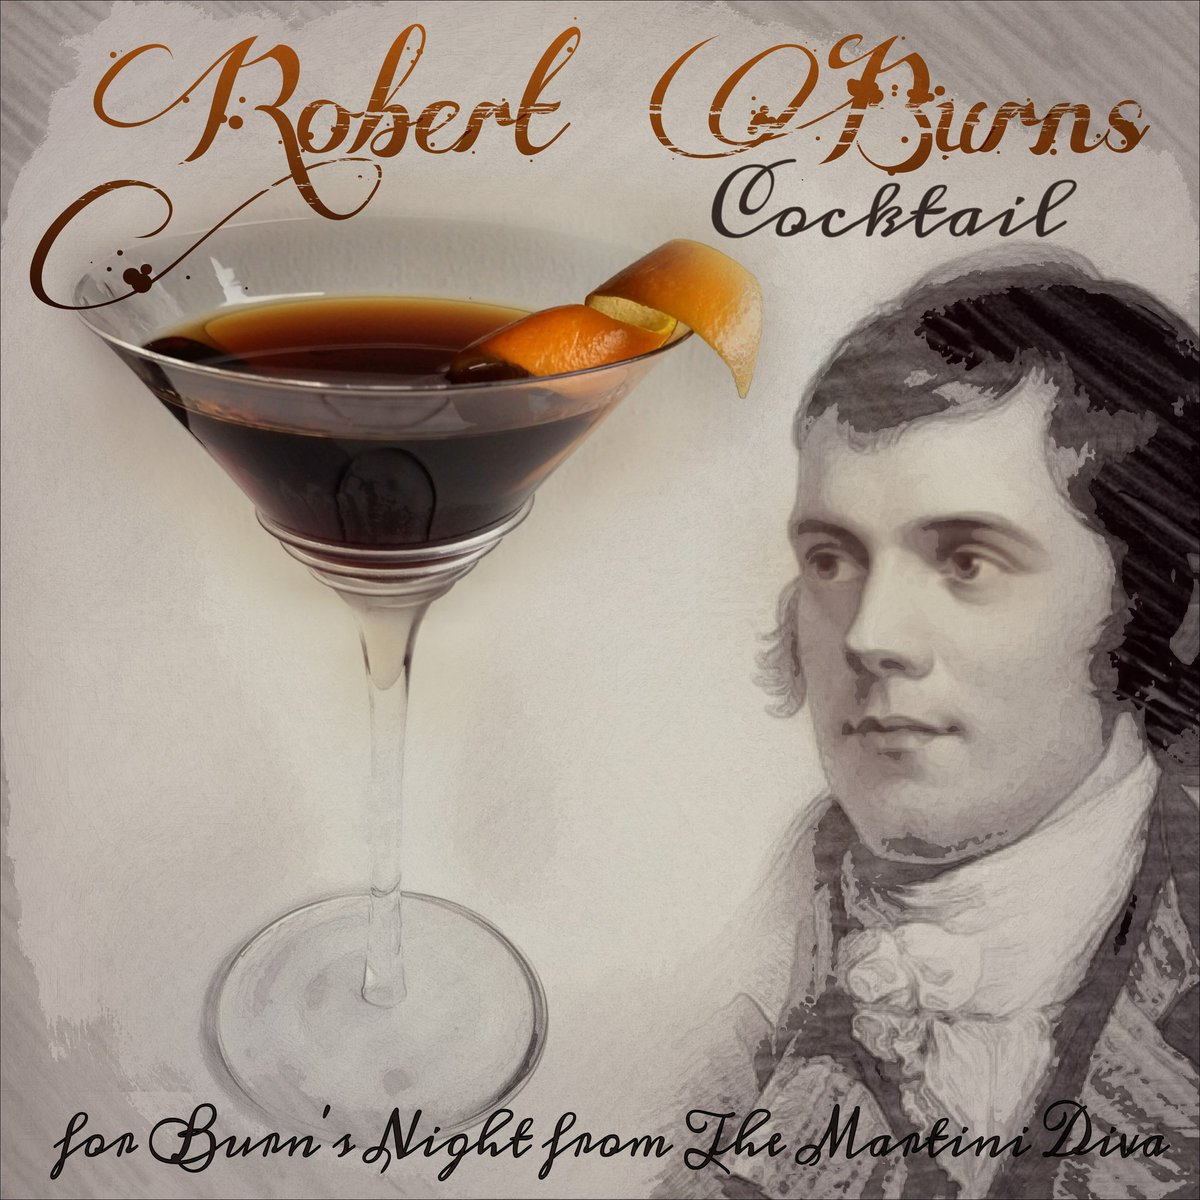 Happy #BurnsDay! Yes, there IS a cocktail for #BurnsNight! The Robert Burns: https://t.co/H1AVhAZD7f https://t.co/UxdbtUBUCg